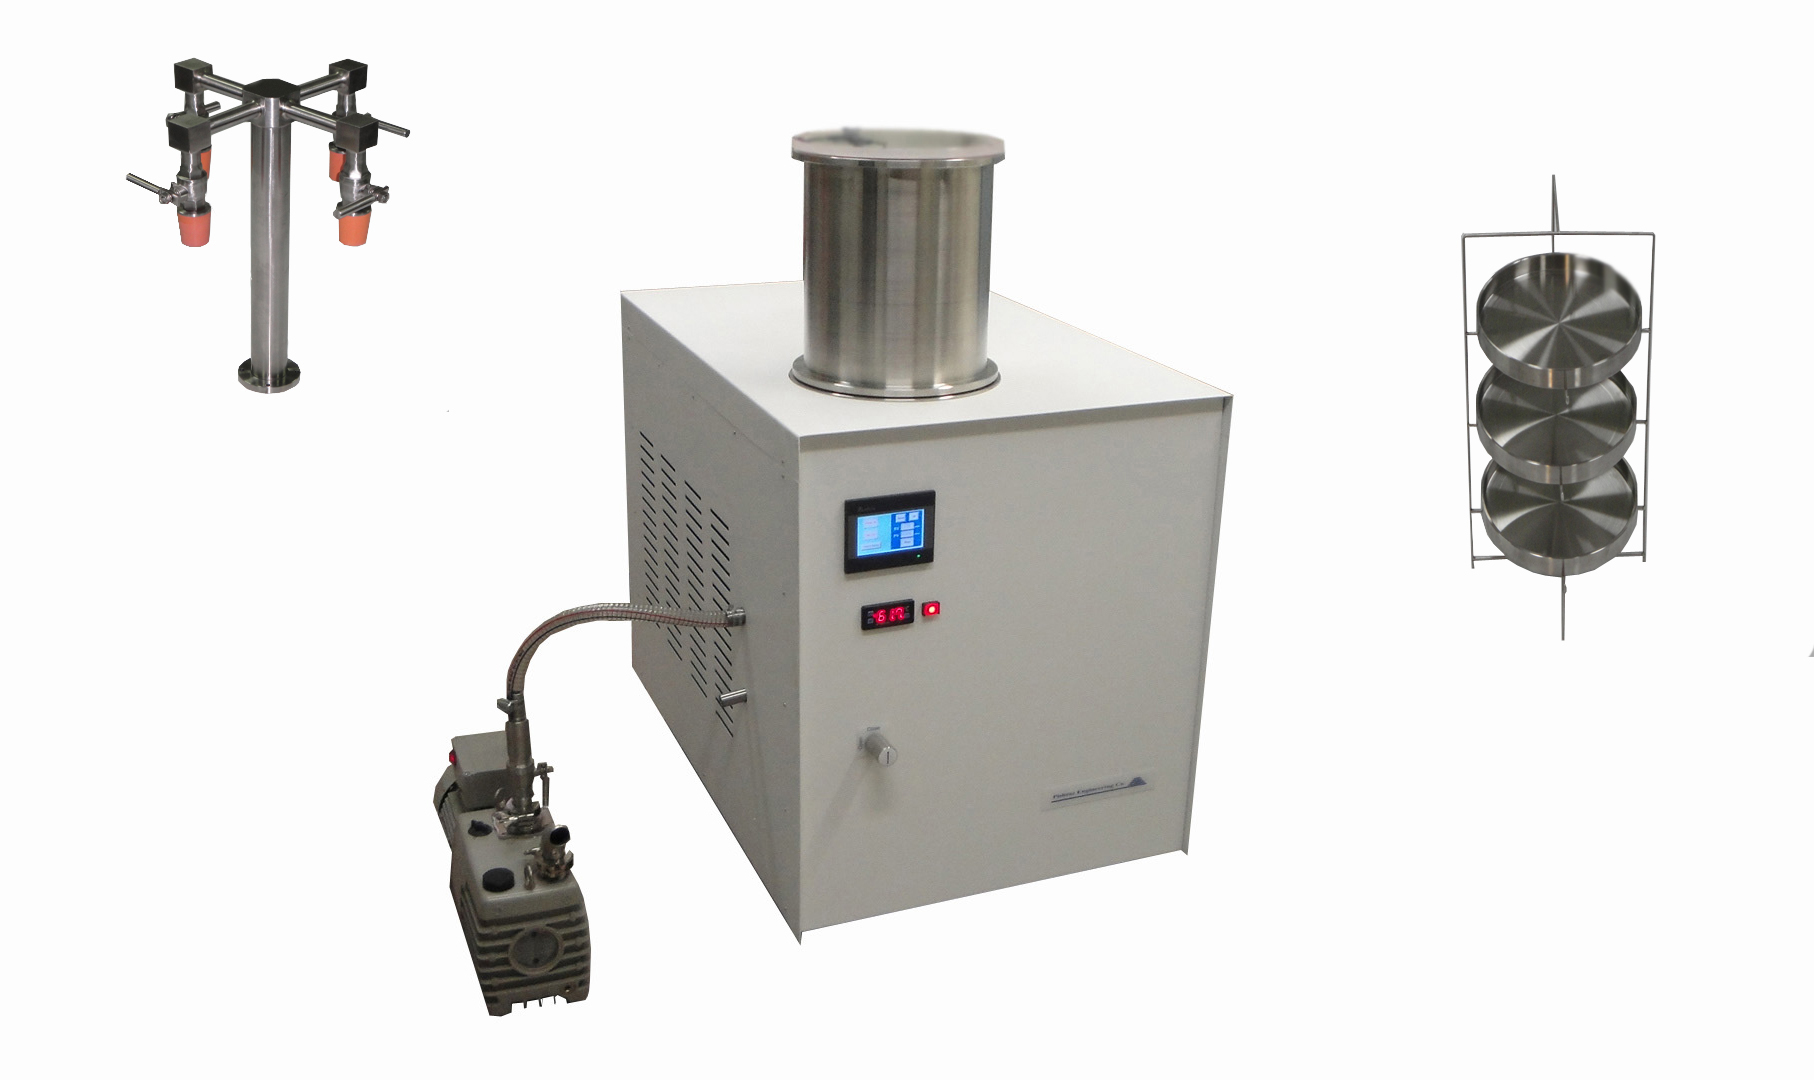 Freeze dryer model  FD-10V